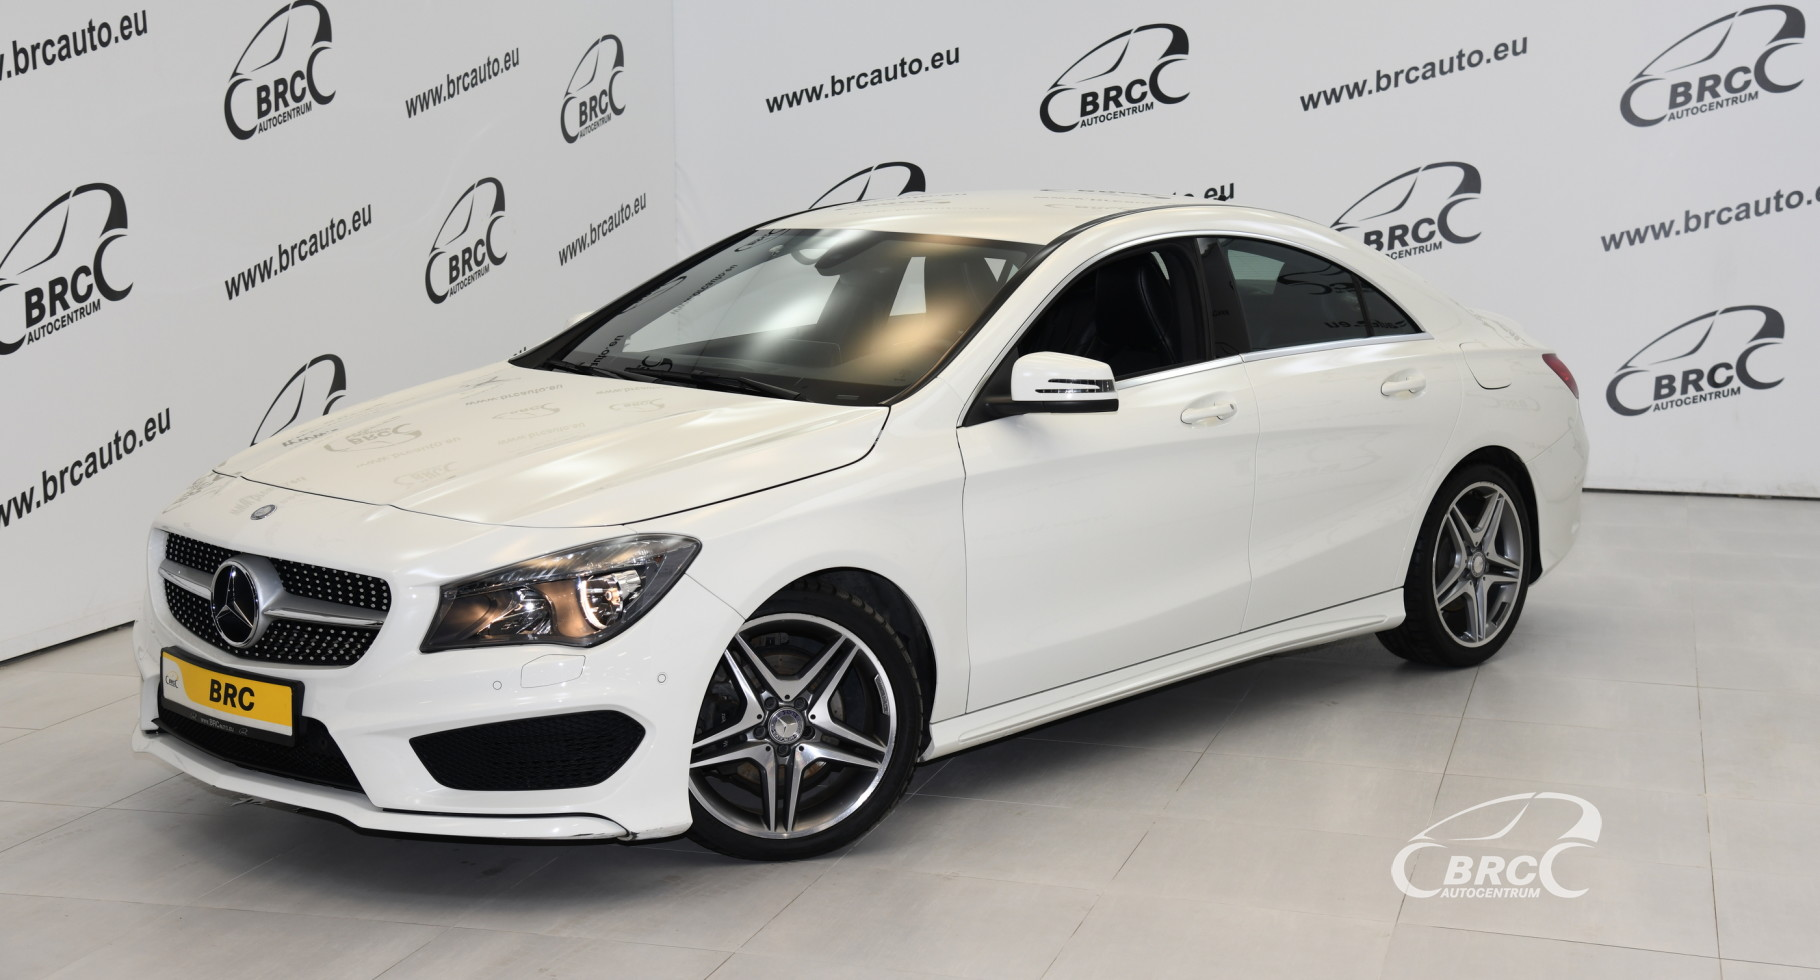 Mercedes-Benz CLA 200 d AMG design 4MATIC Automatas